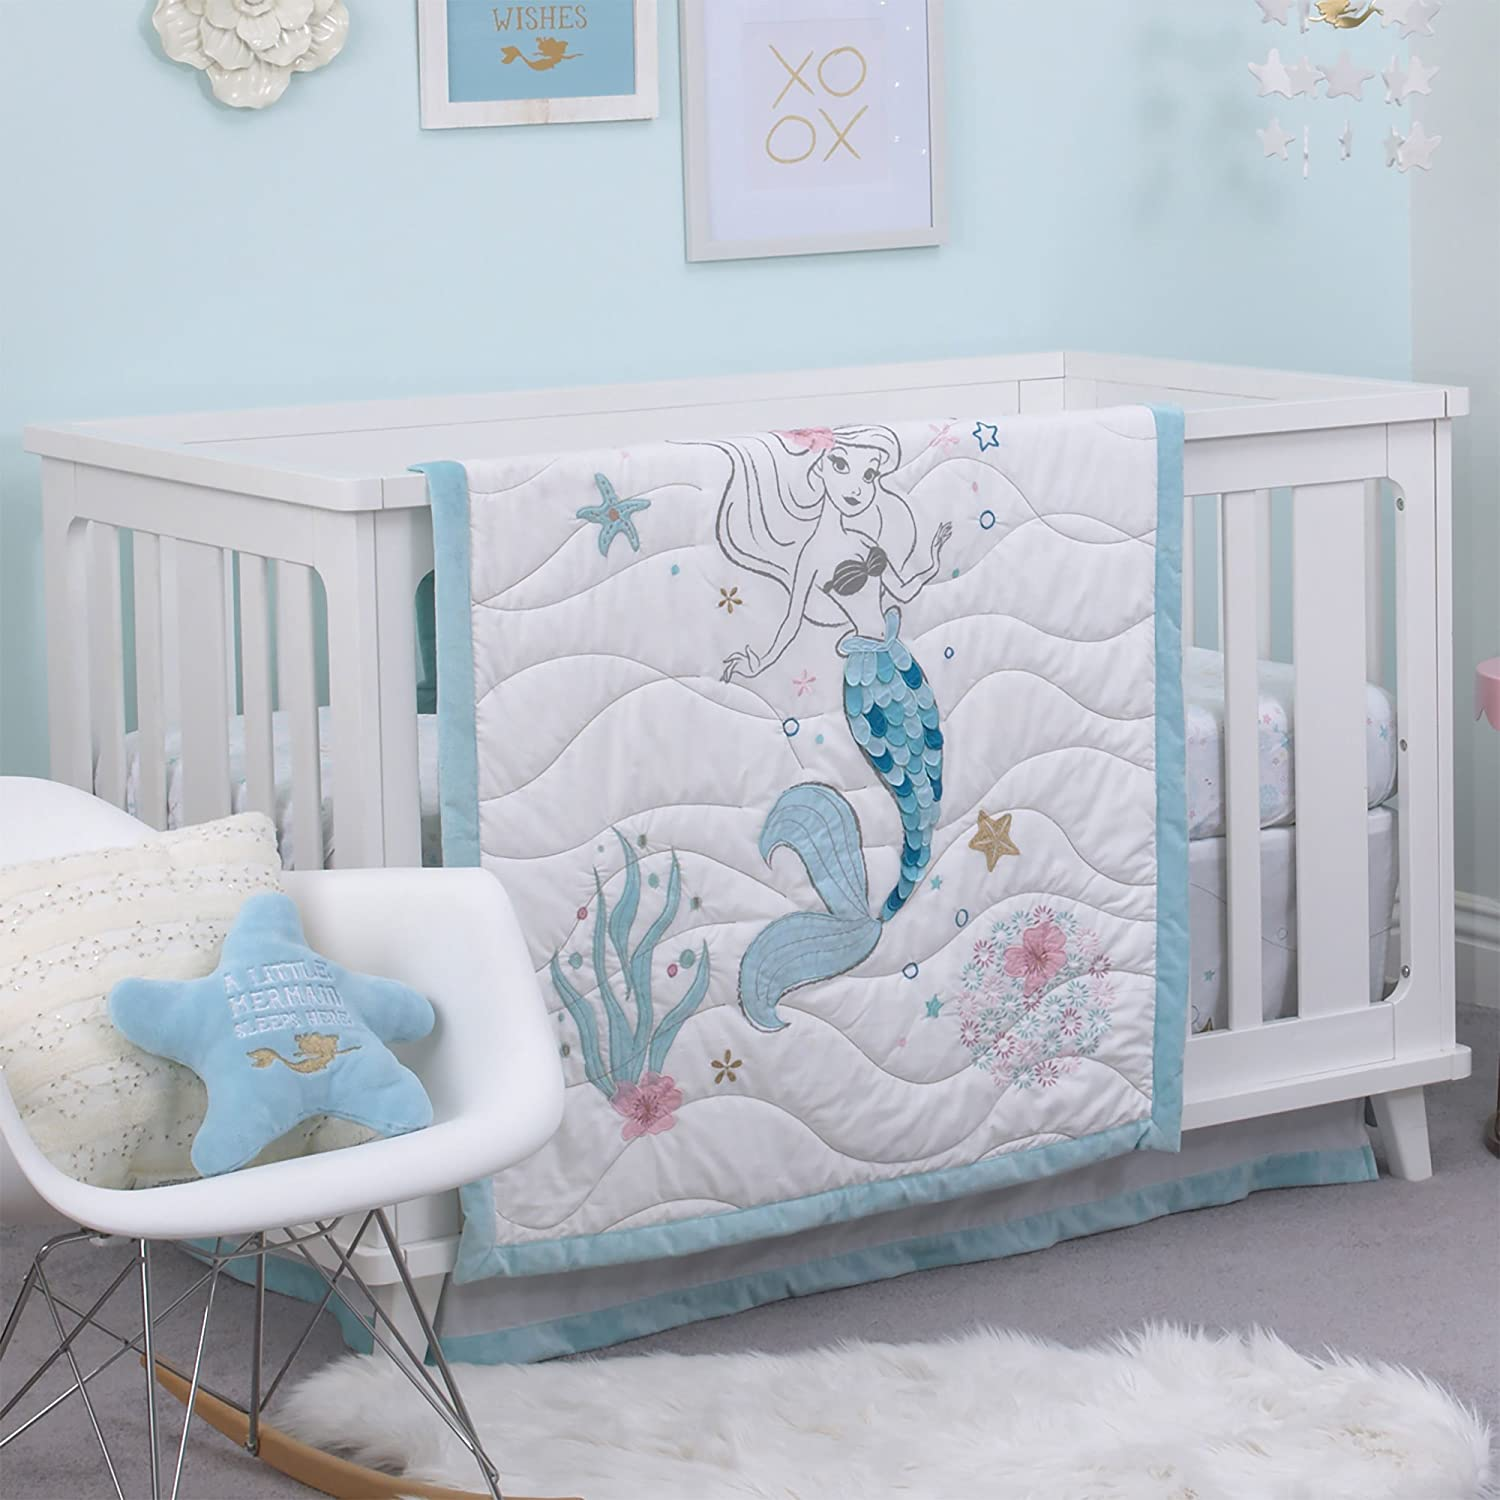 Disney Ariel Sea Princess 3 Piece Crib Bedding Set, Blue/White/Gold/Pink Crown Crafts Inc 3395276